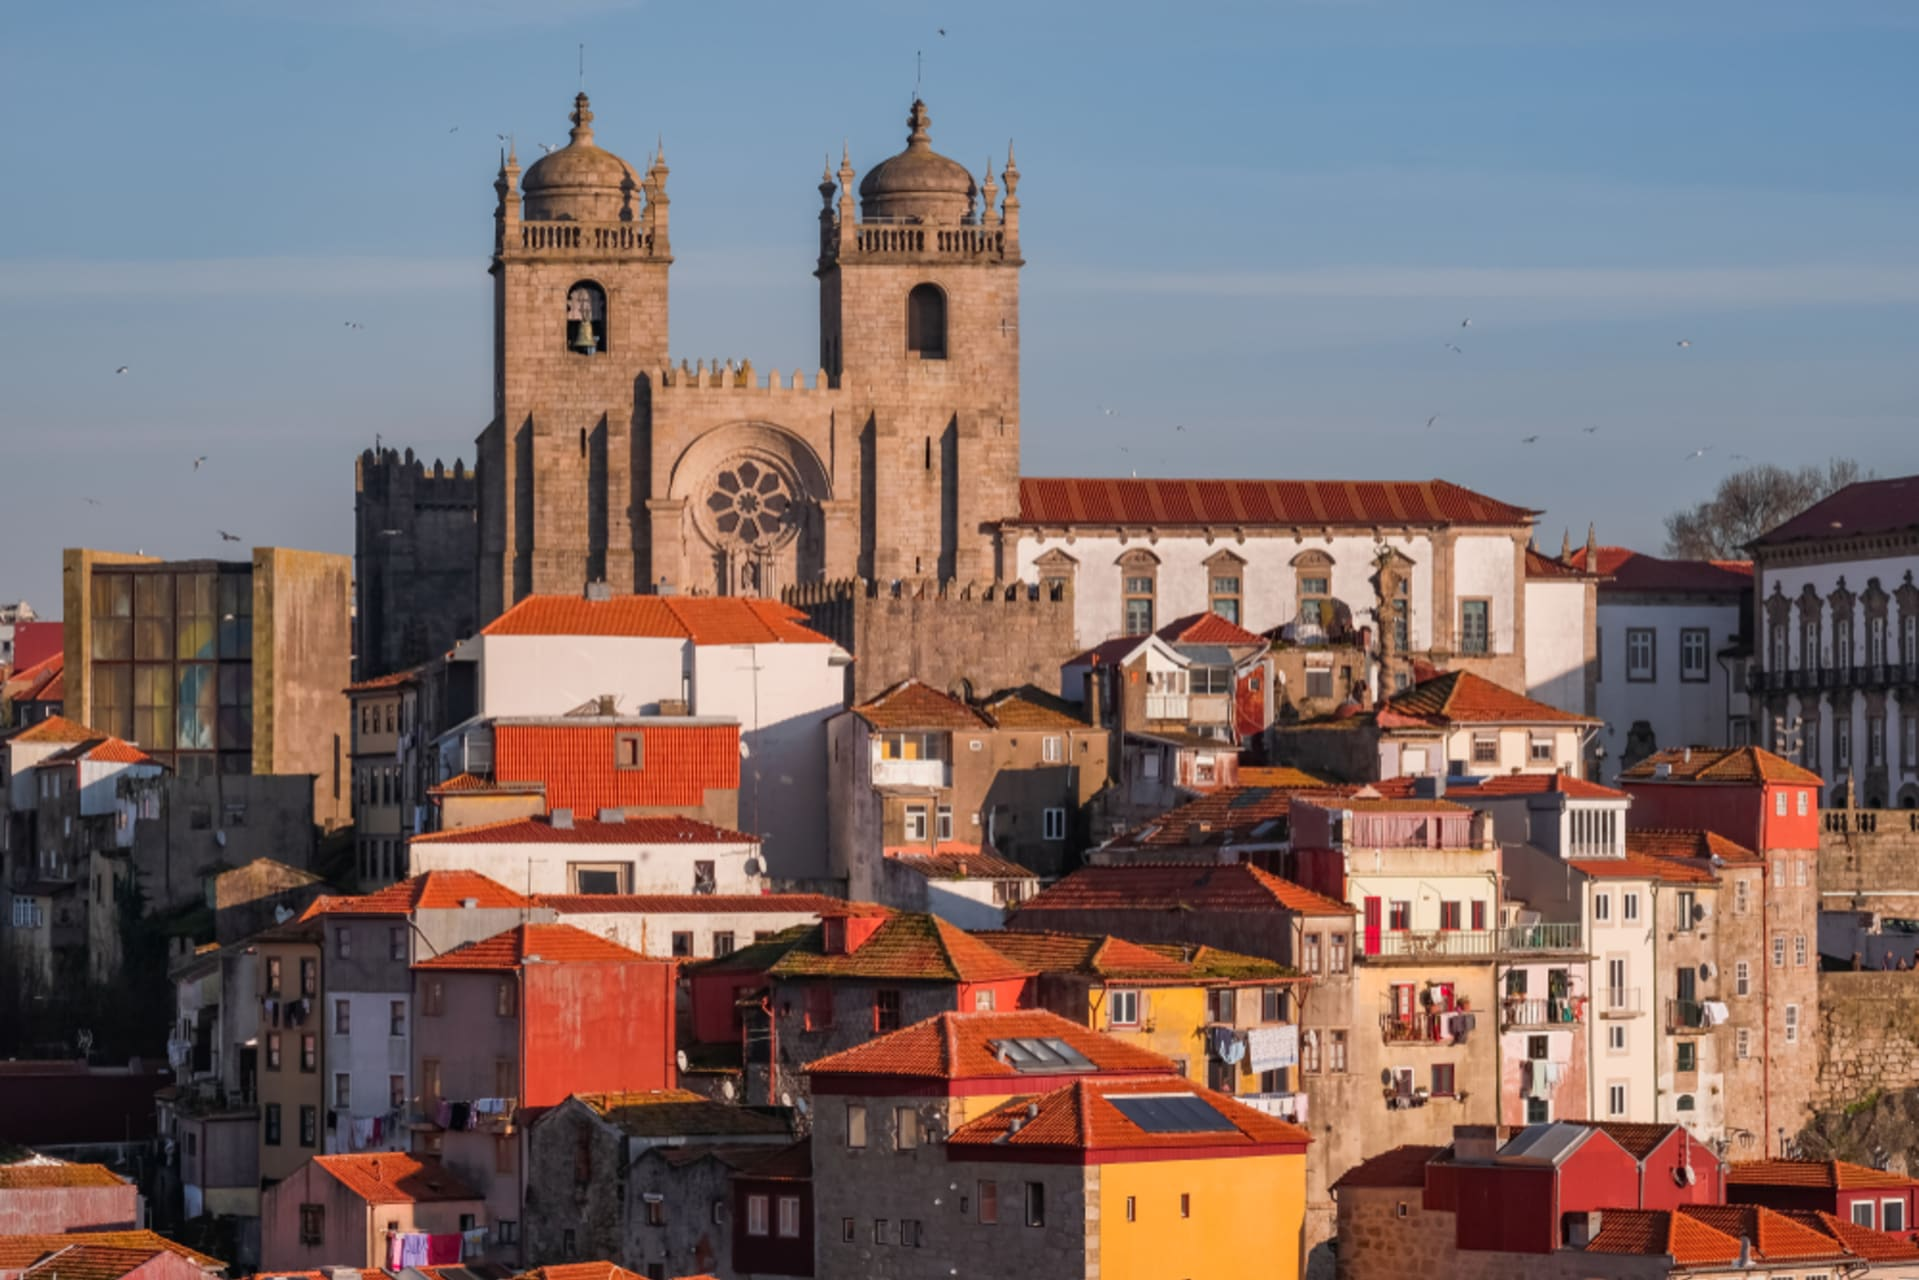 Porto - The Bishops altar and the Old Quarter